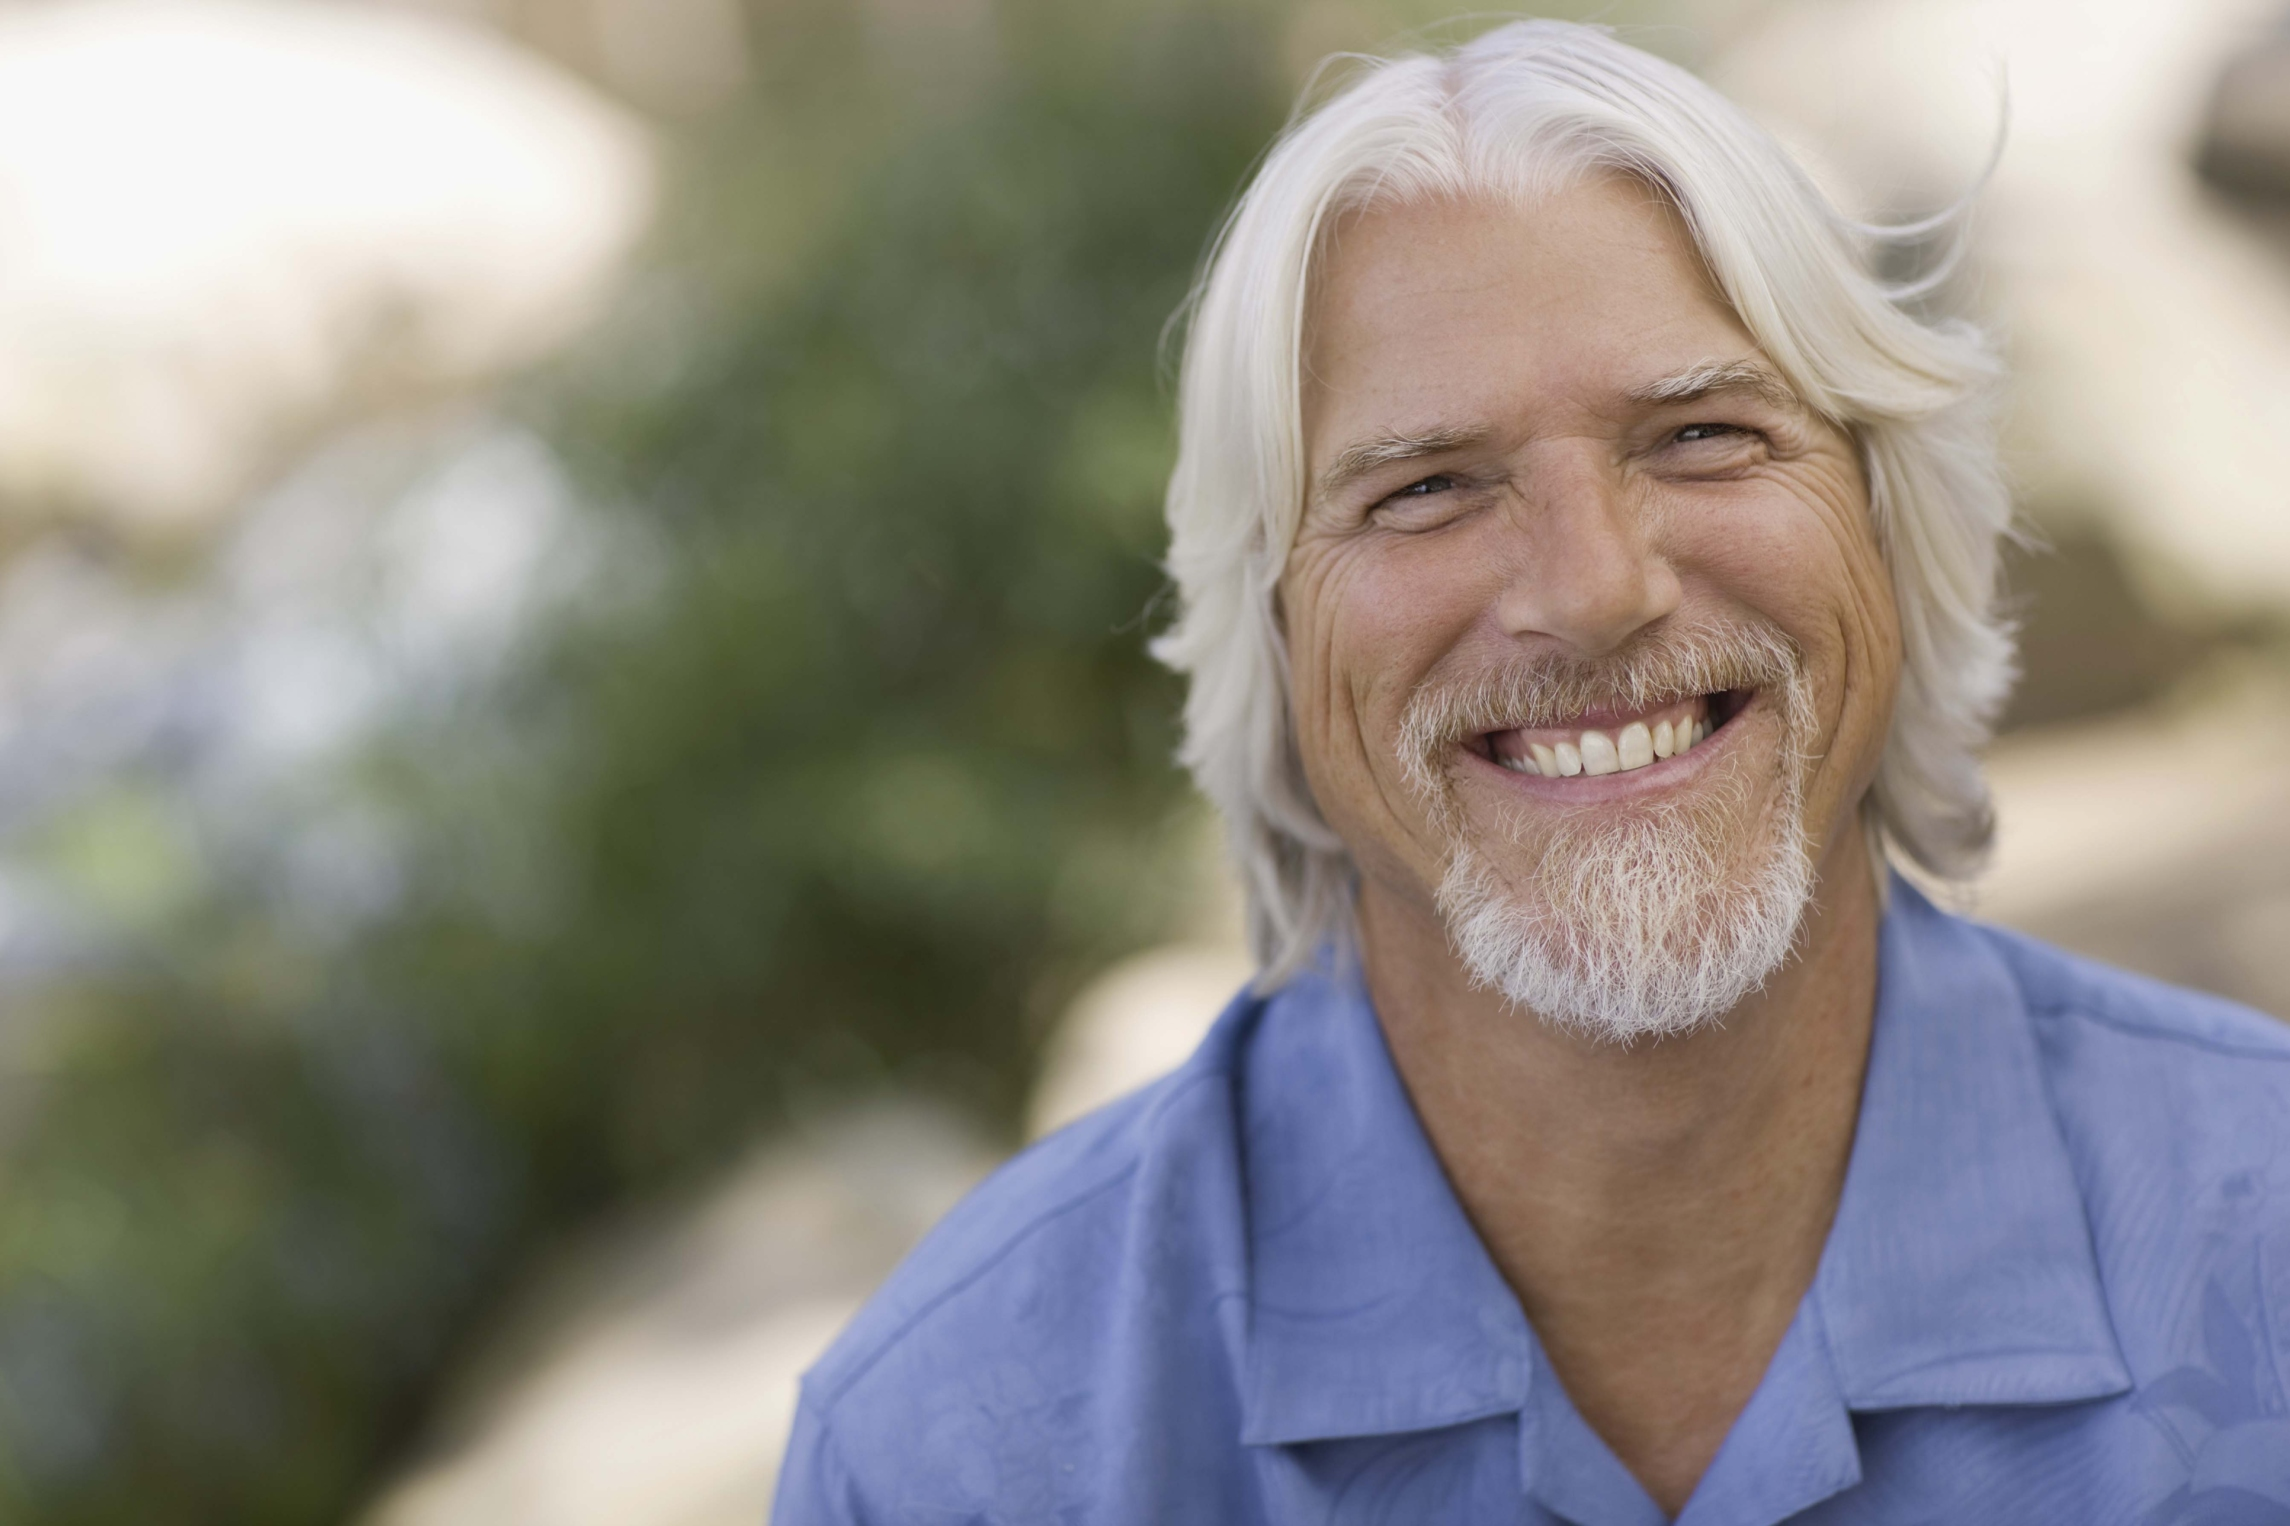 The Best Facial Hair Styles For Gray Hair